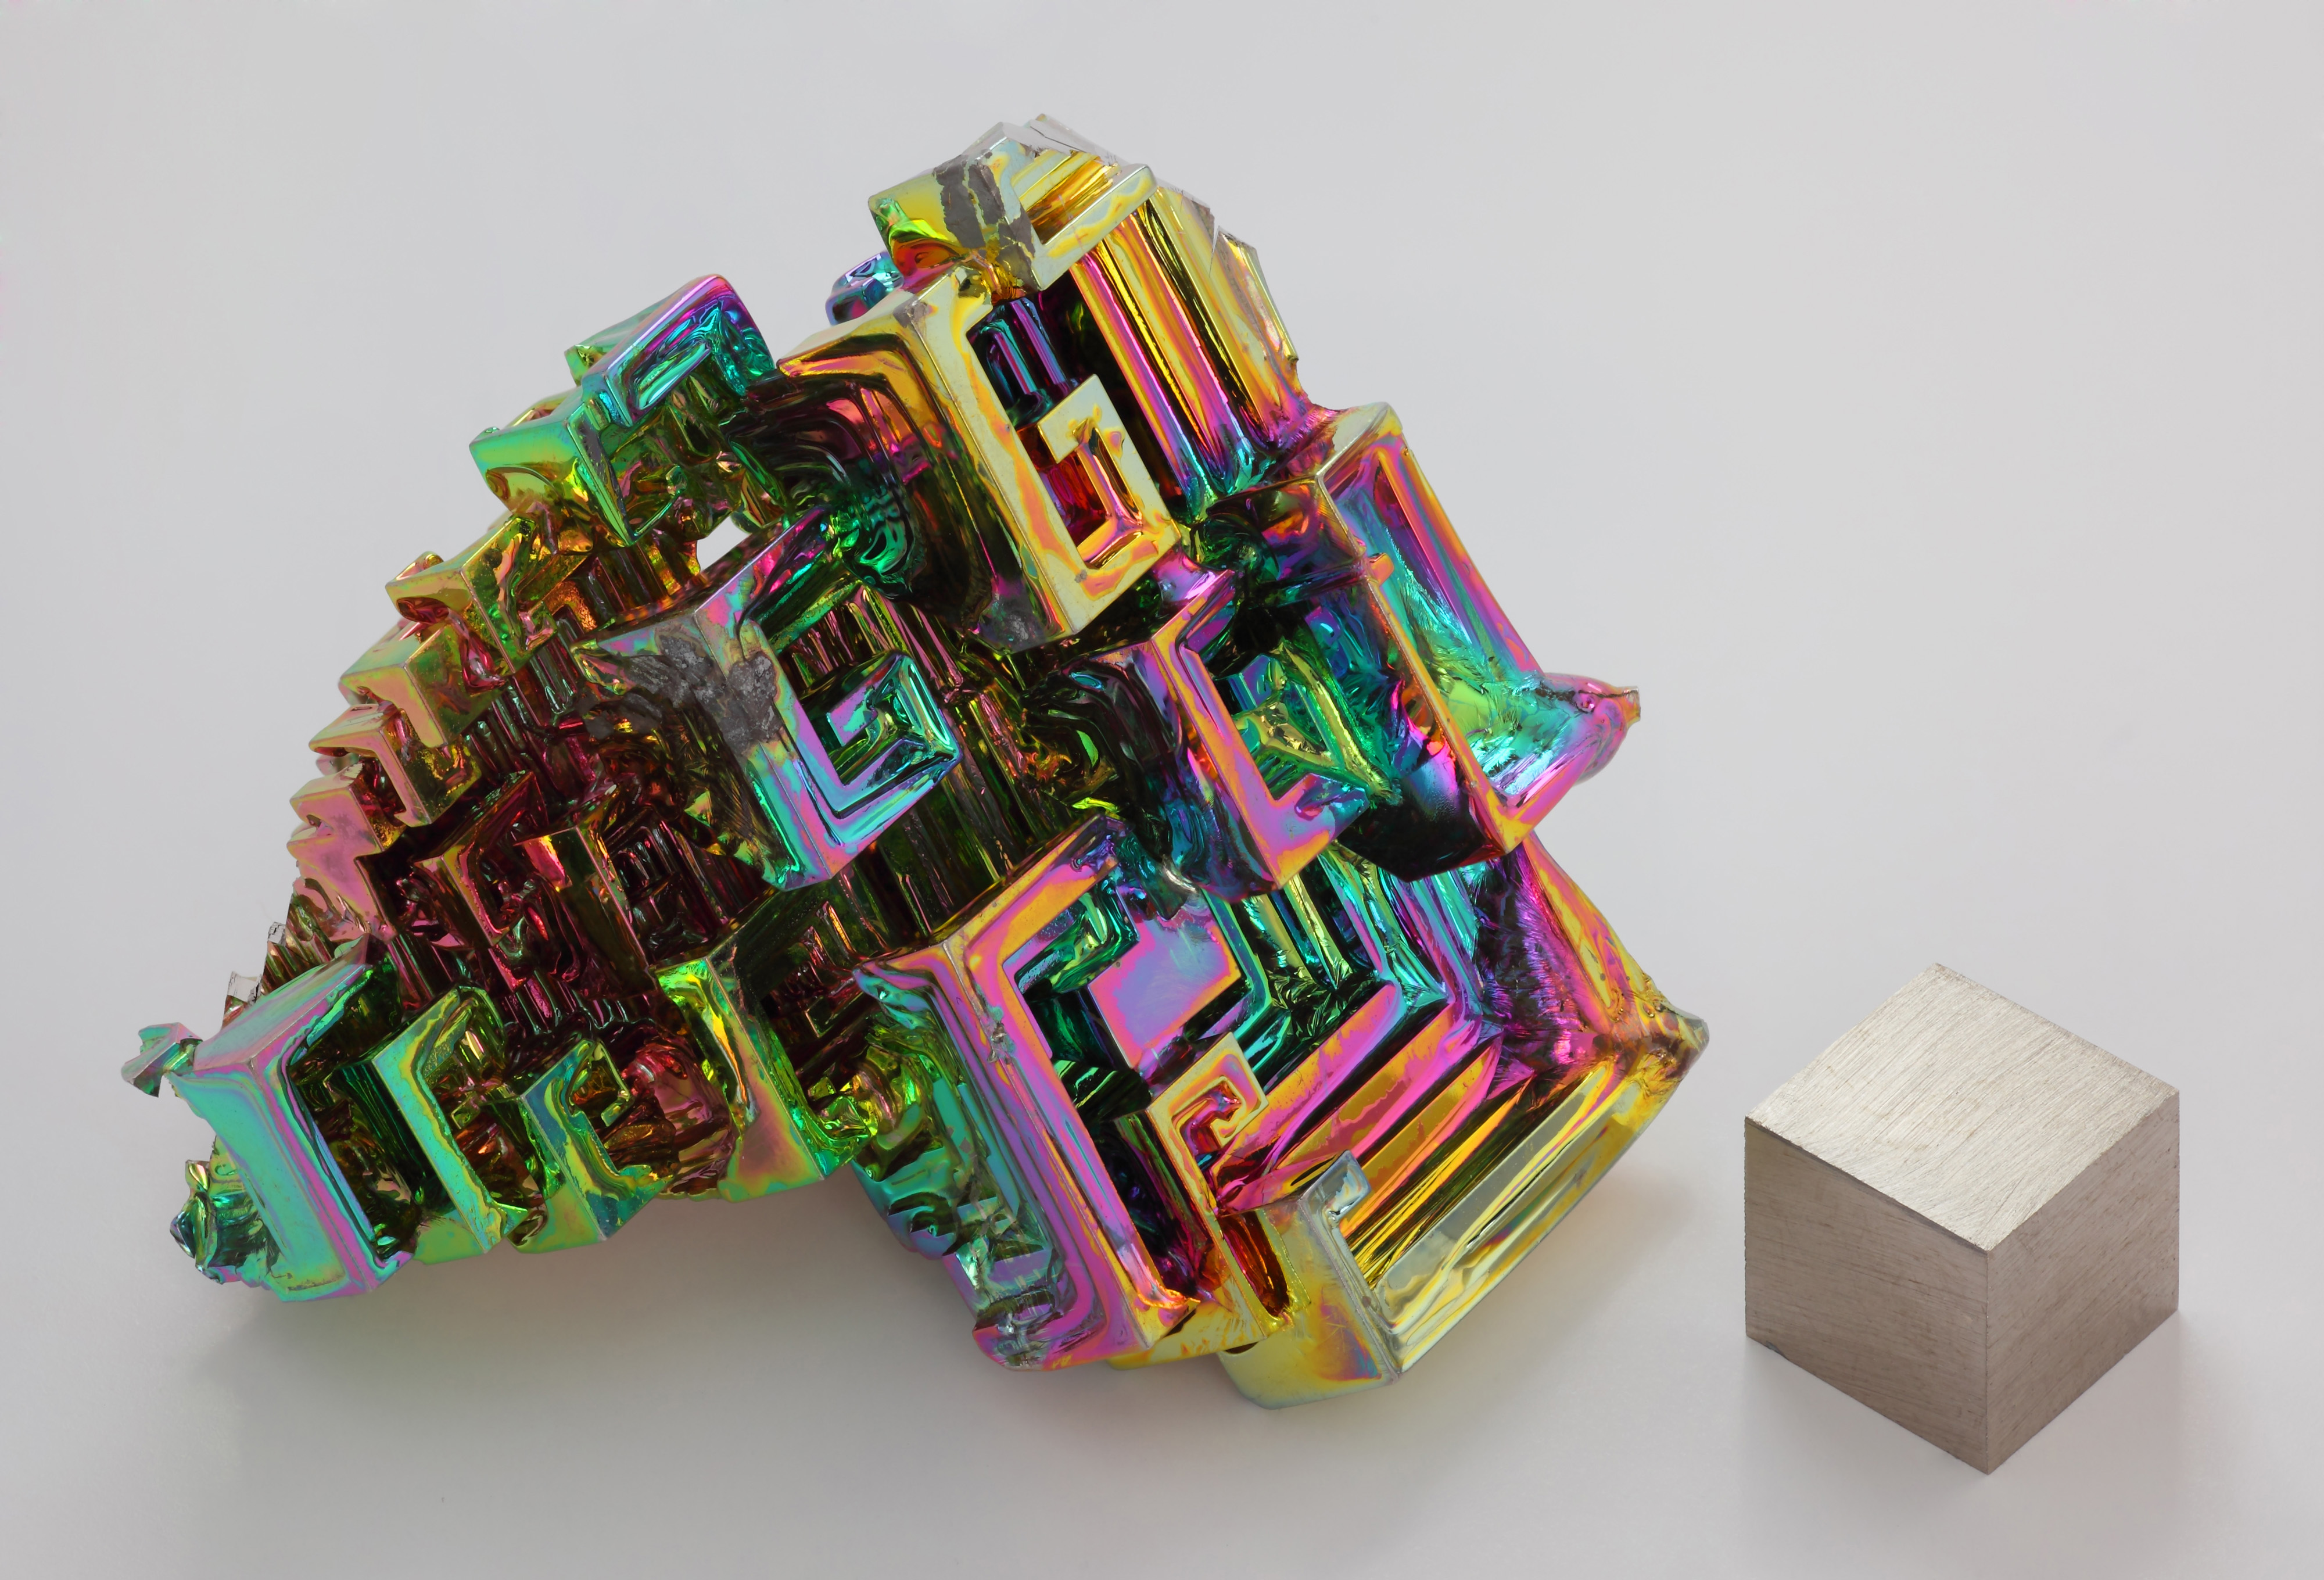 abstract iridescence bismuth crystal HD Wallpaper